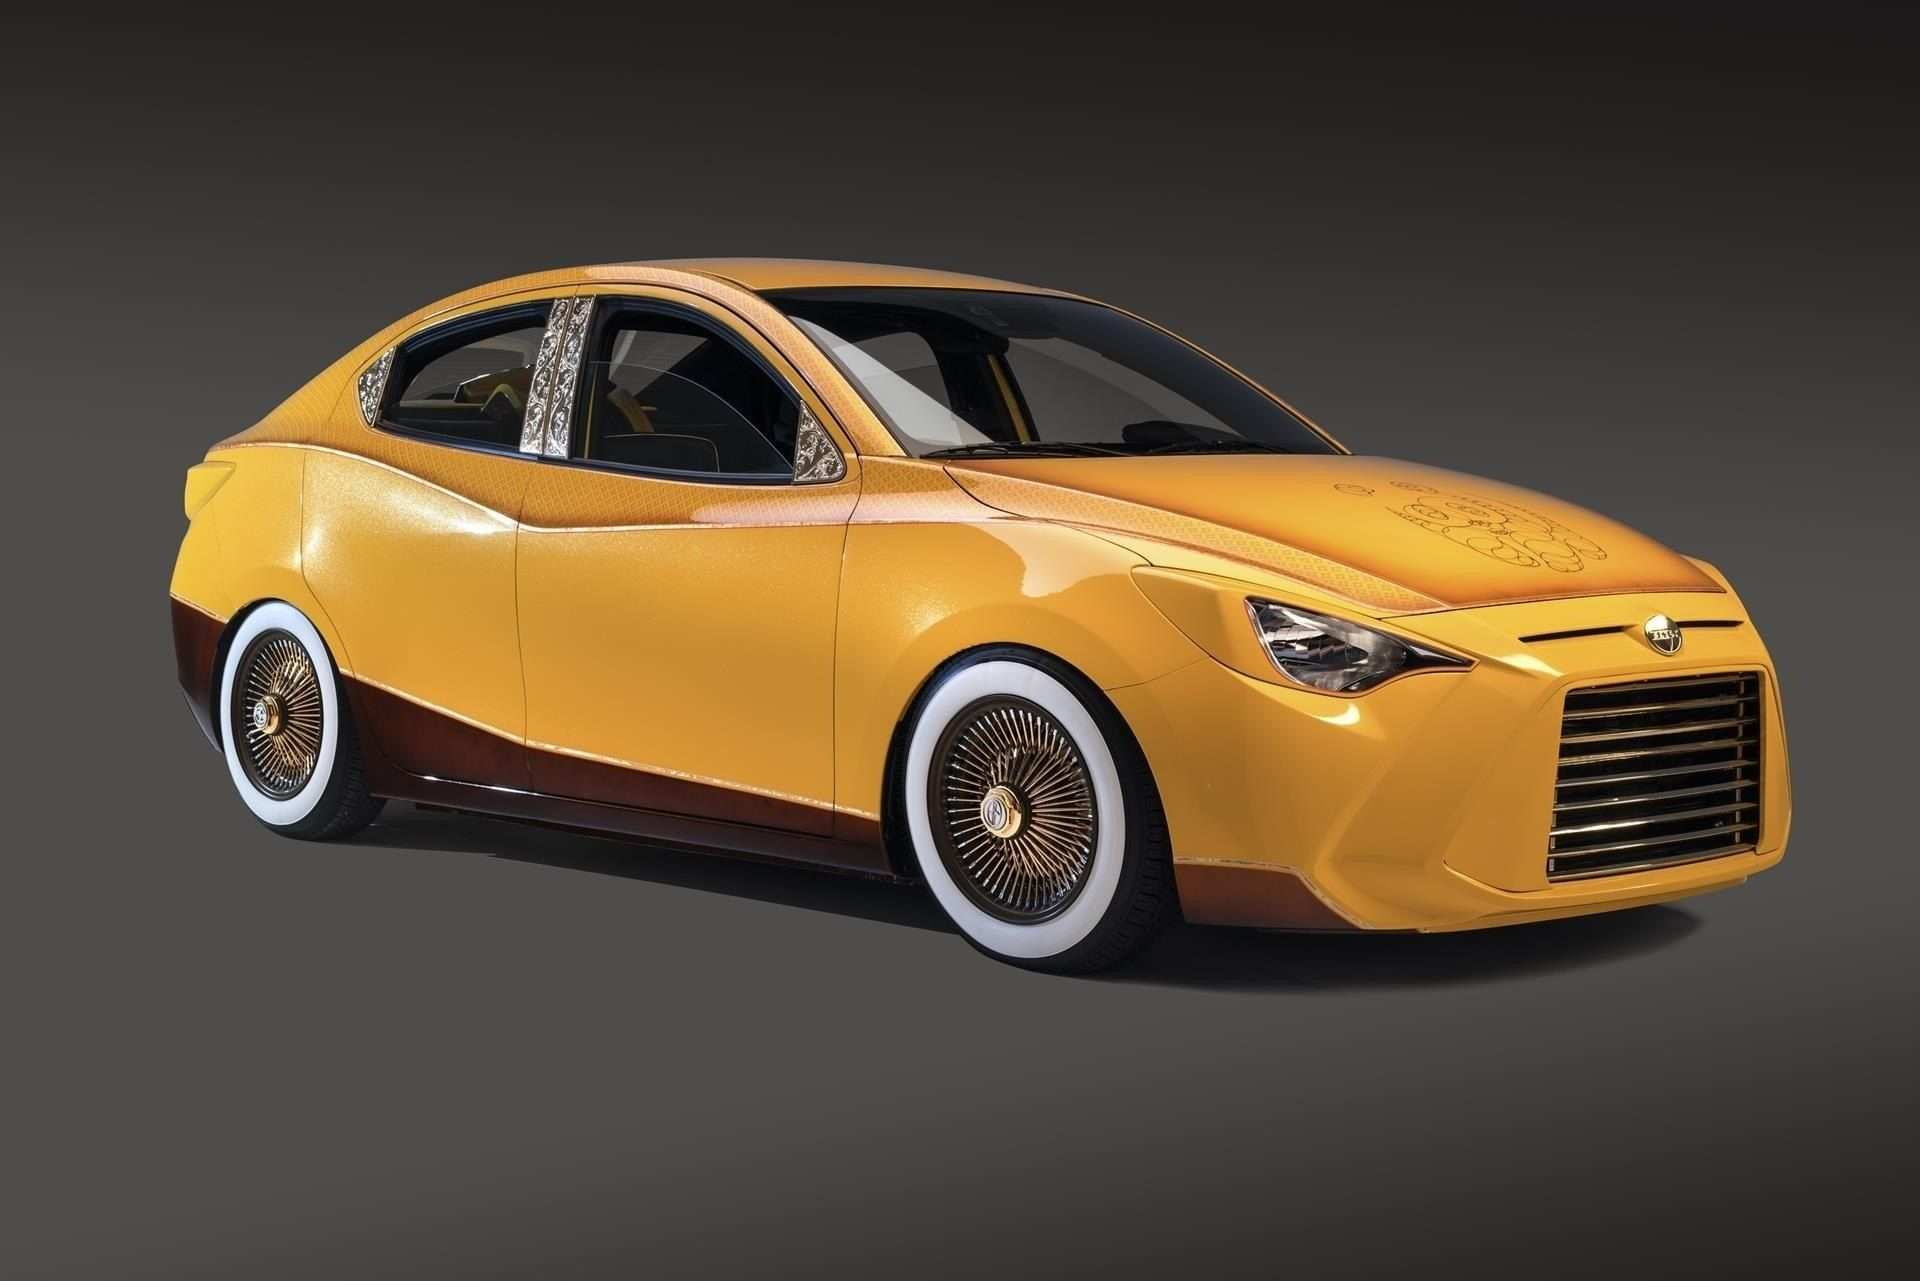 87 Gallery of 2019 Scion Tced Rumors with 2019 Scion Tced